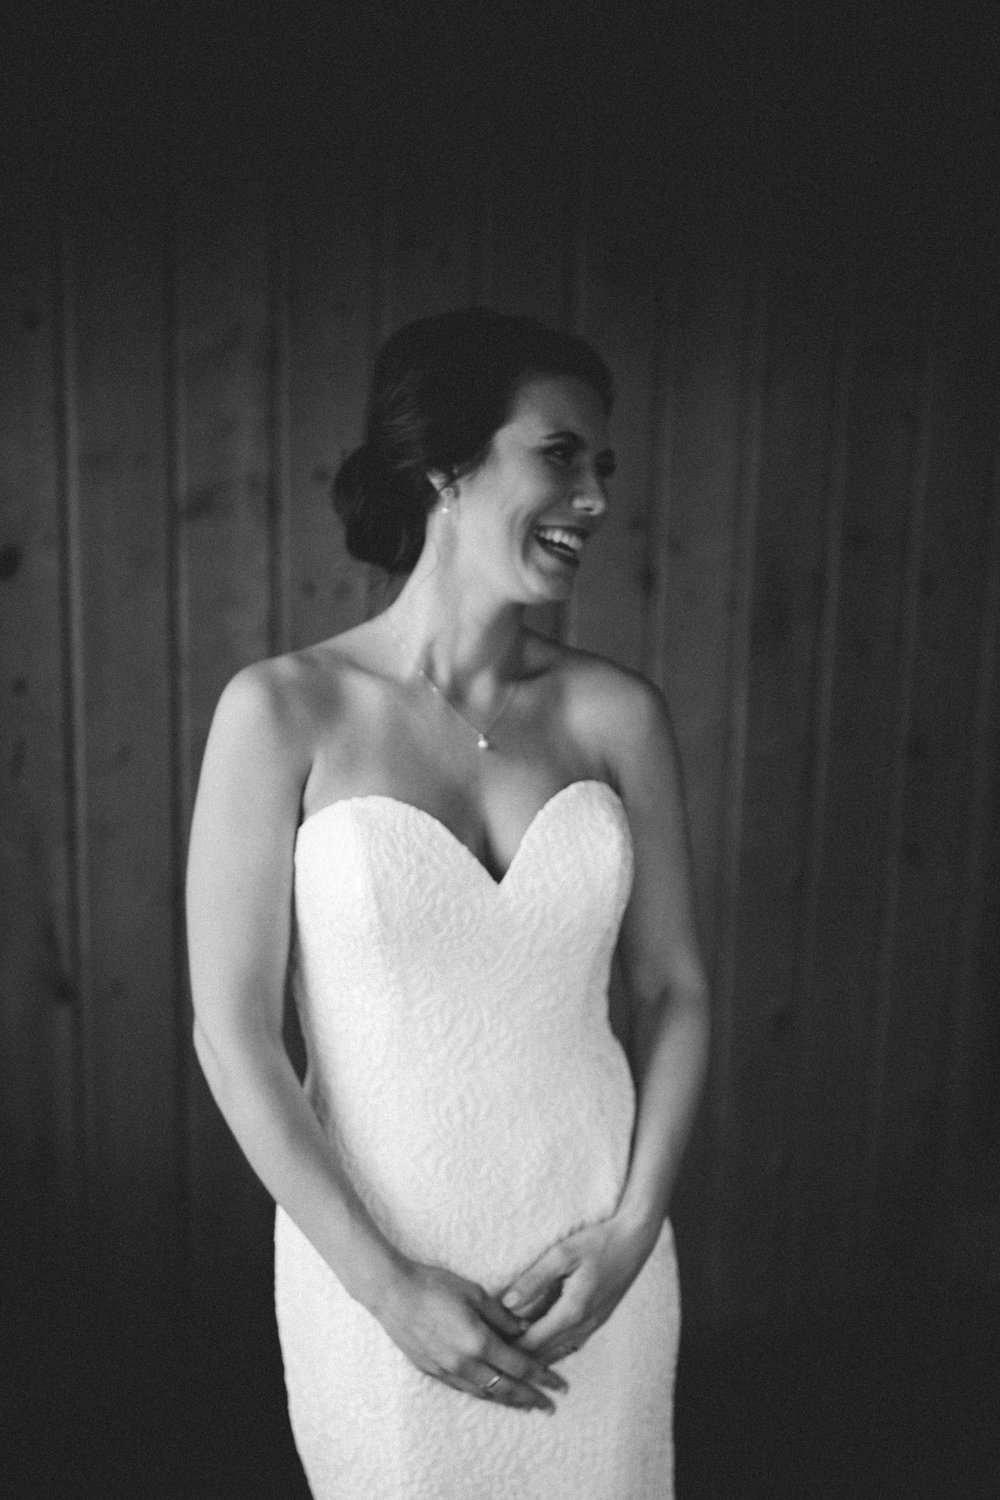 Stunning bride at Grand View Lodge in Nisswa Minnesota. Photography by Britt DeZeeuw, Brainerd Lakes area wedding photographer.